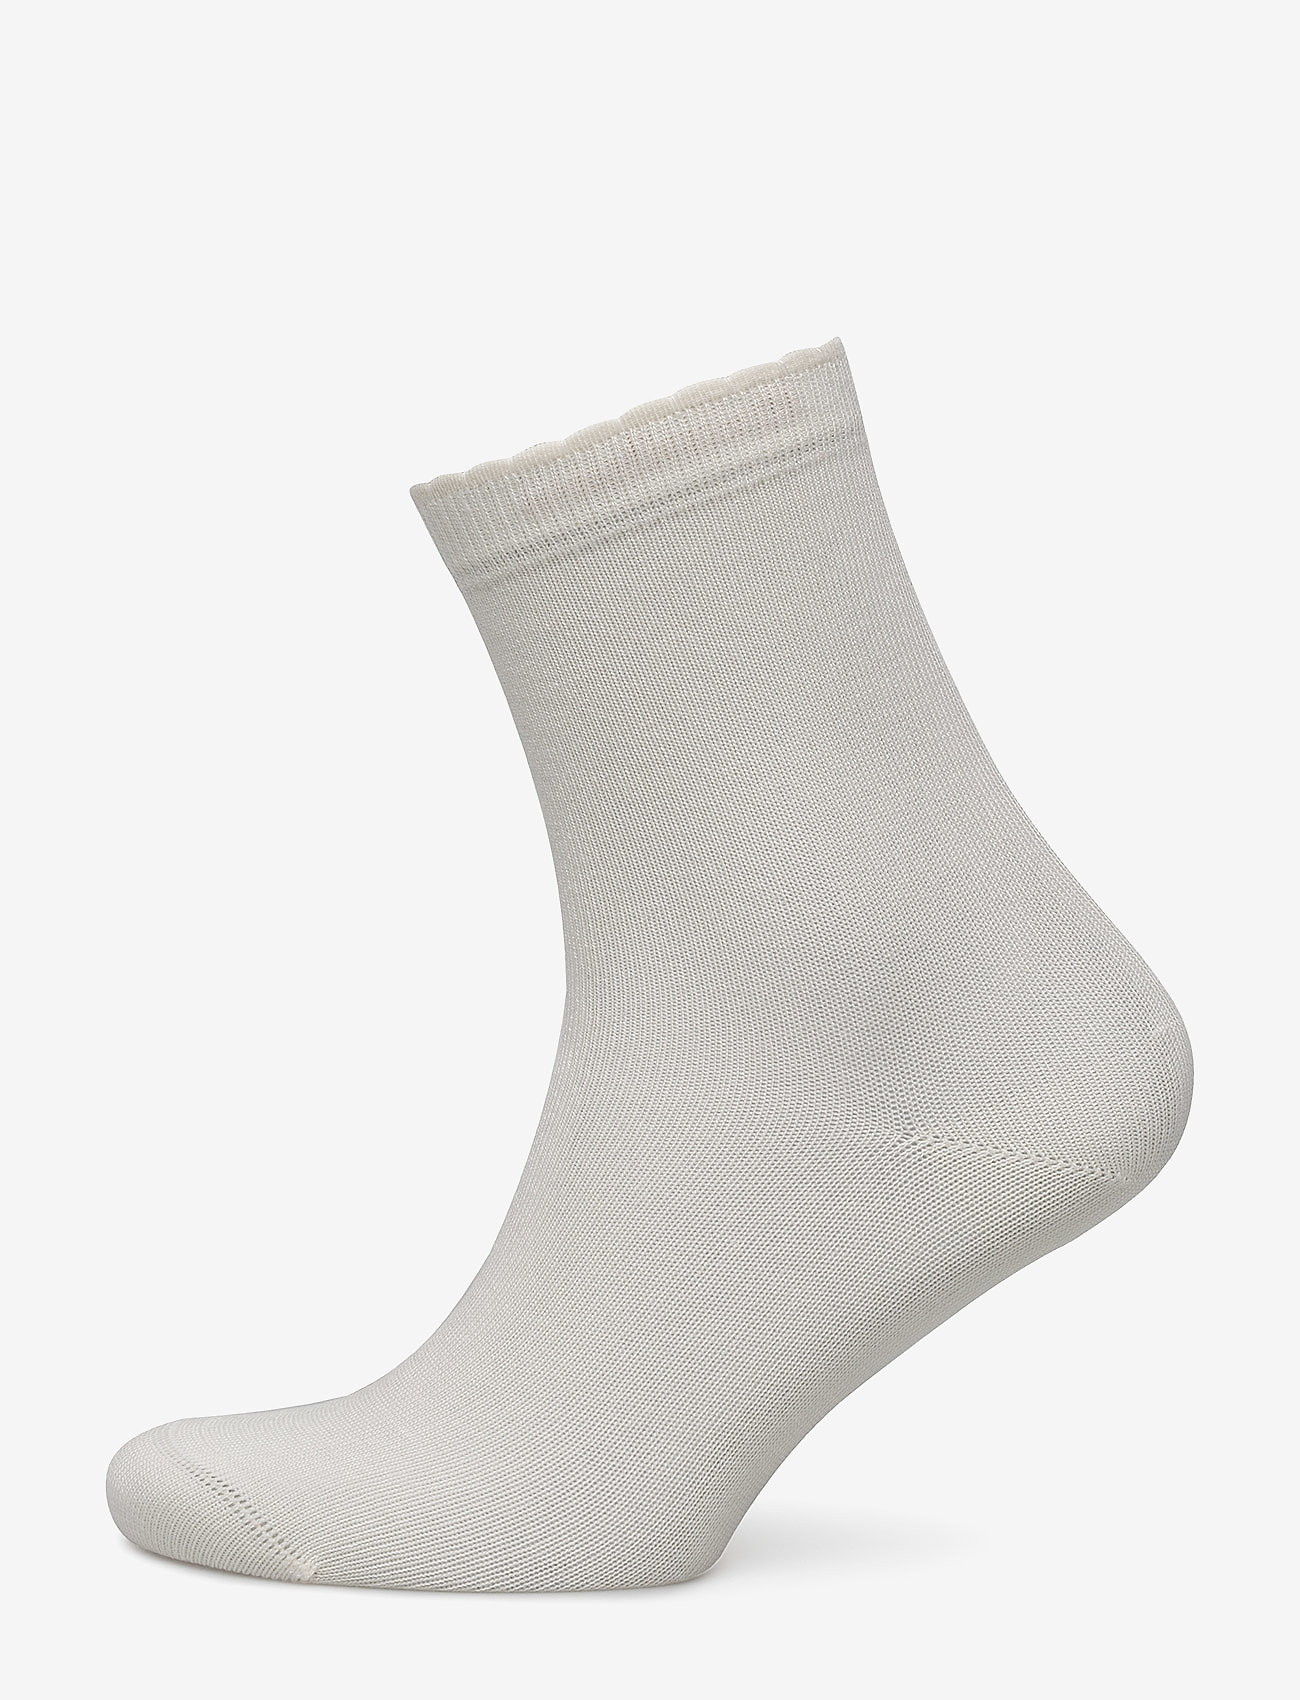 Vogue - Ladies anklesock, Bamboo Socks - sokker - off-white - 0